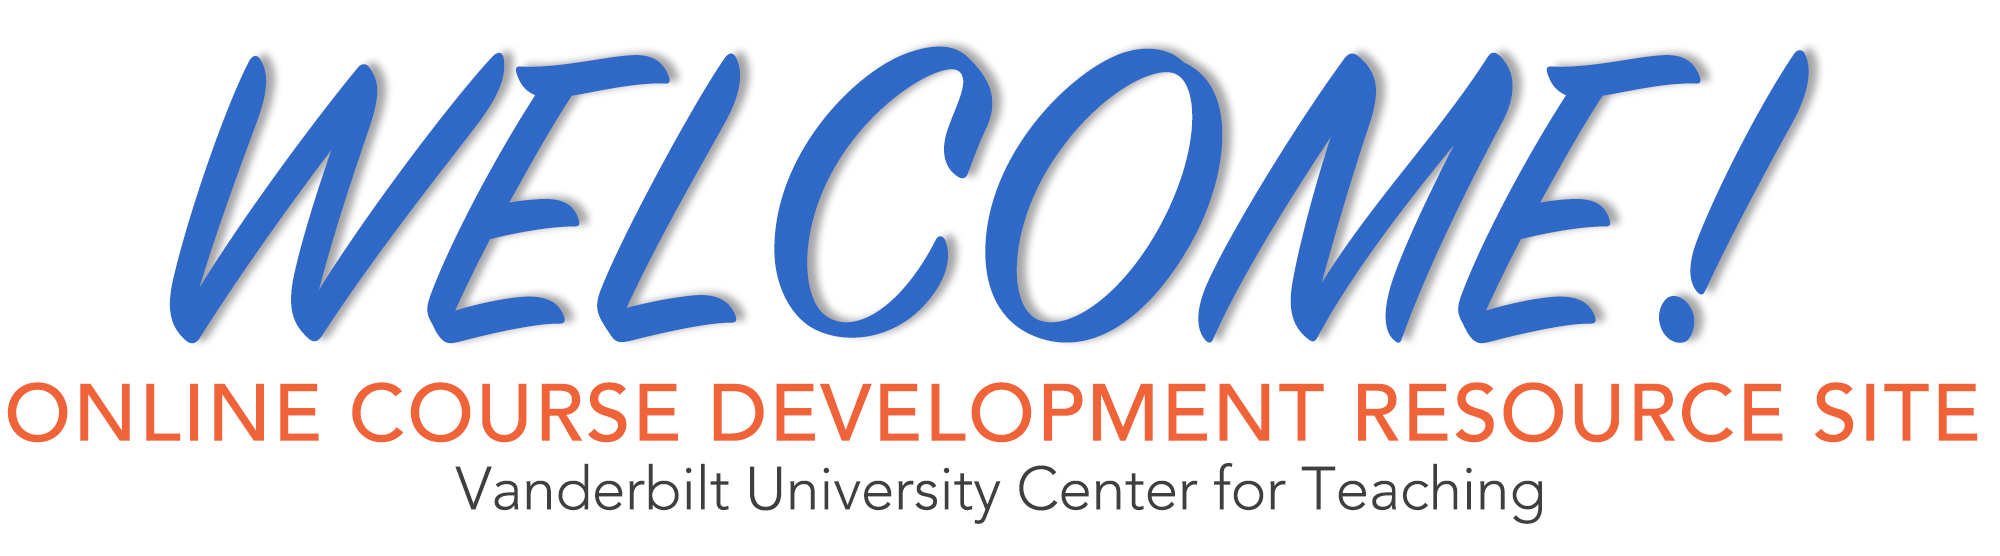 Welcome to the Online Course Development Resources Site from the Vanderbilt University Center for Teaching